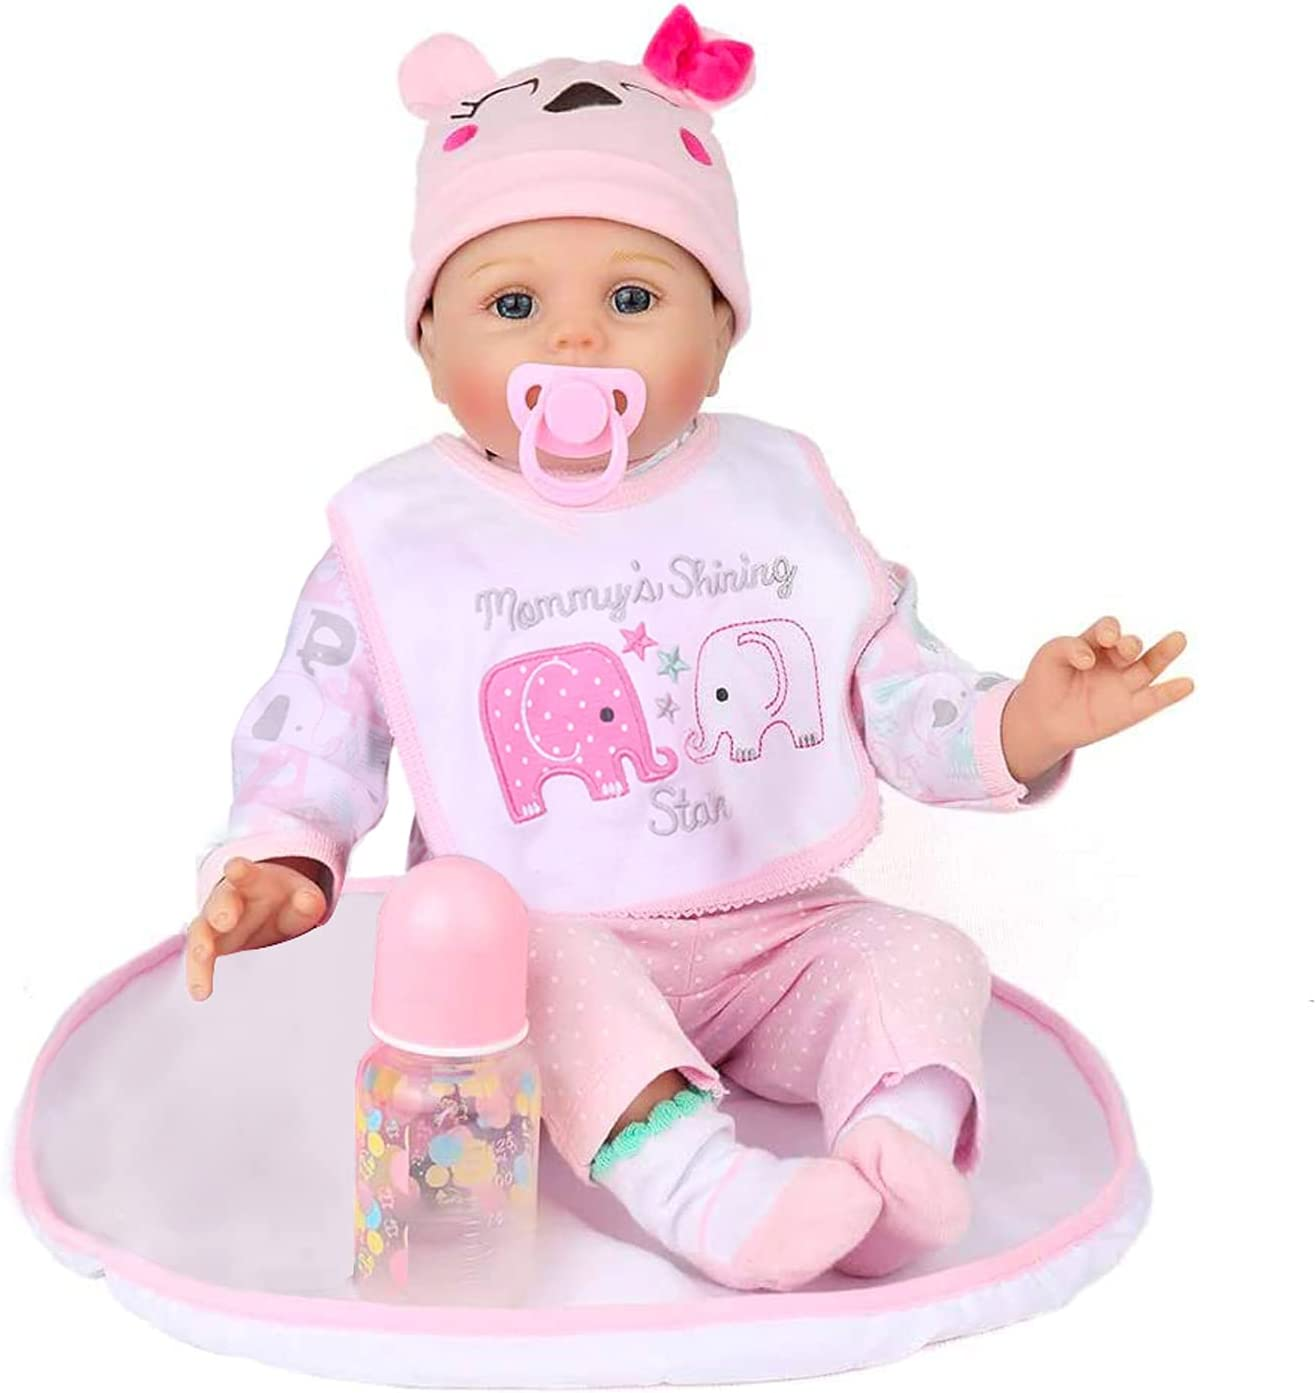 Kaydora Reborn SEAL limited product Baby Doll Girl 22 Body inch Cute Ranking TOP6 Soft Weighted